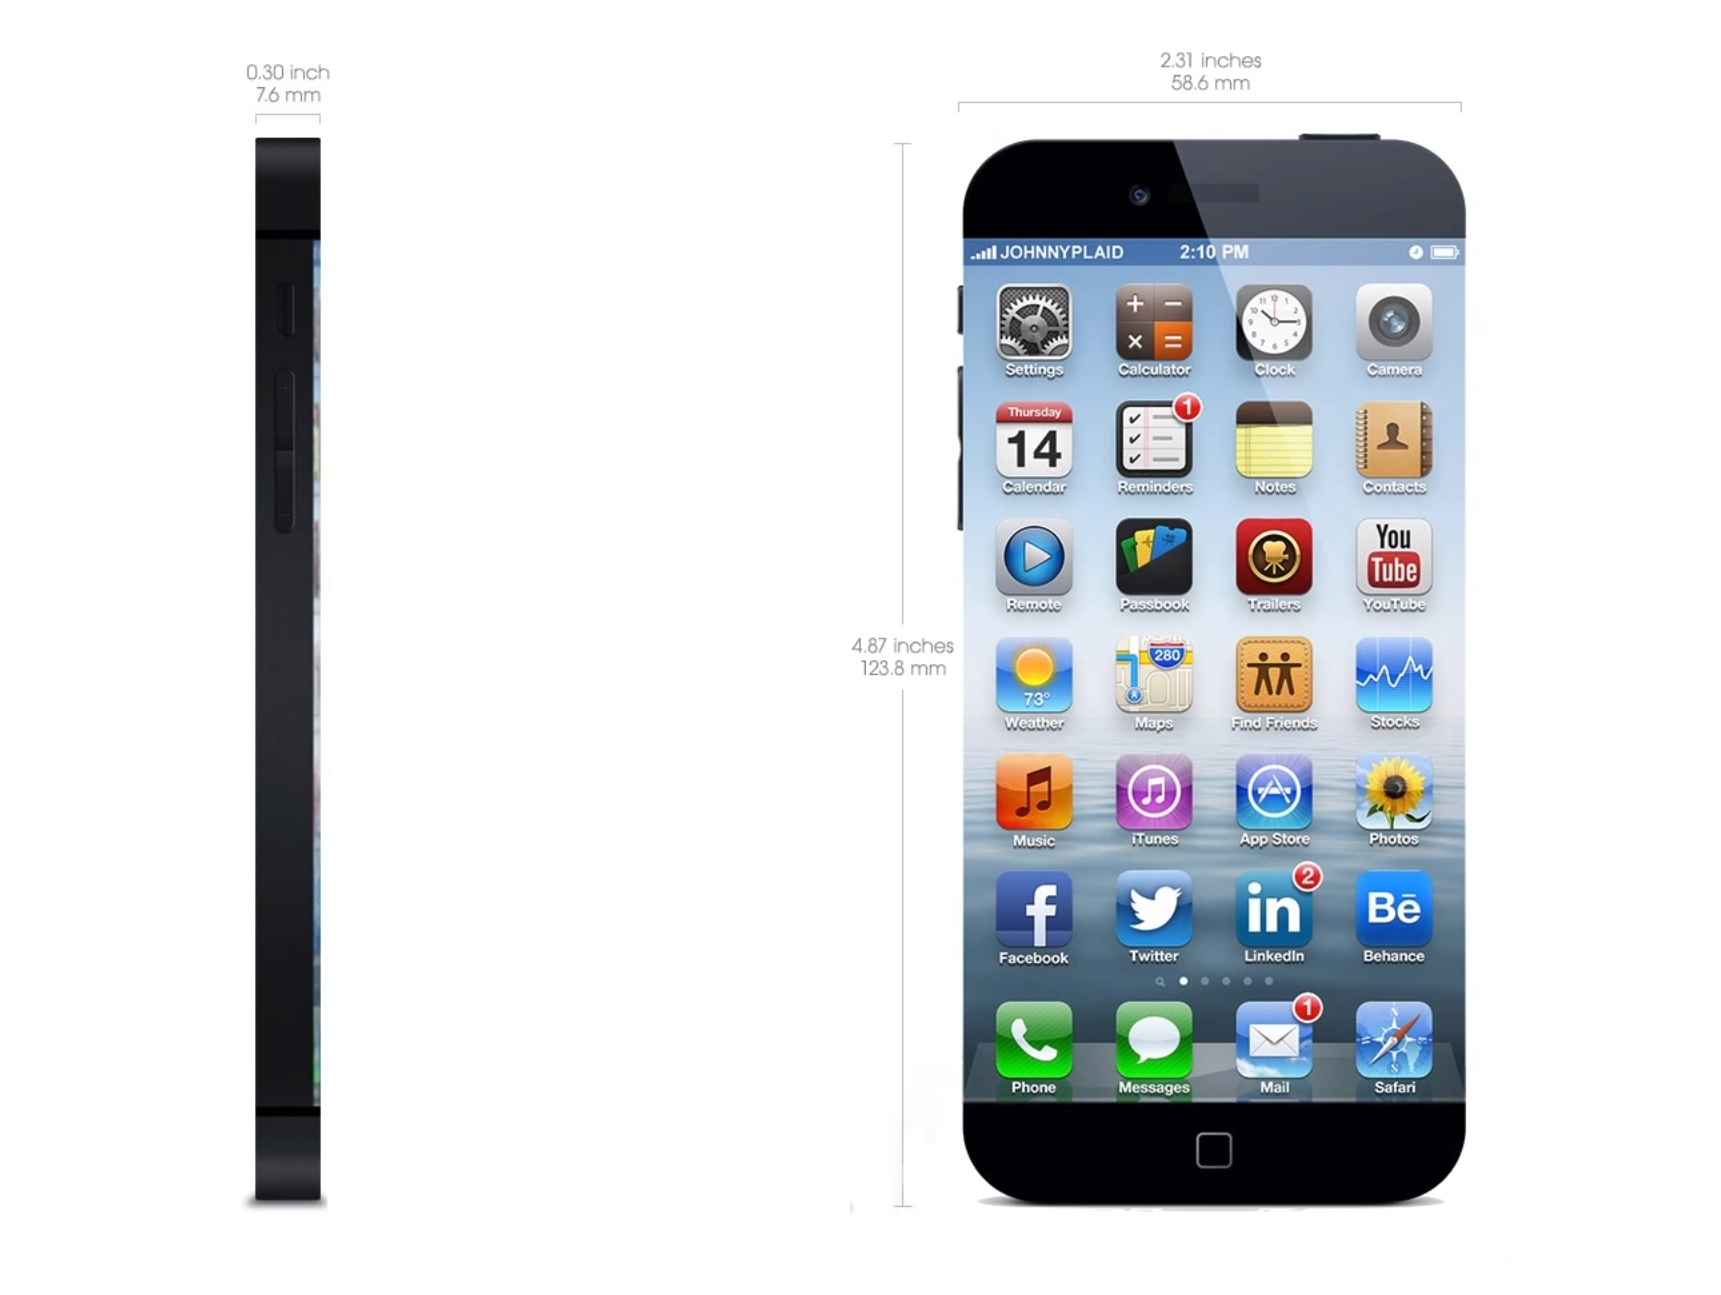 Iphone 6 clipart dimensions banner free stock Iphone screen clipart size - ClipartFox banner free stock